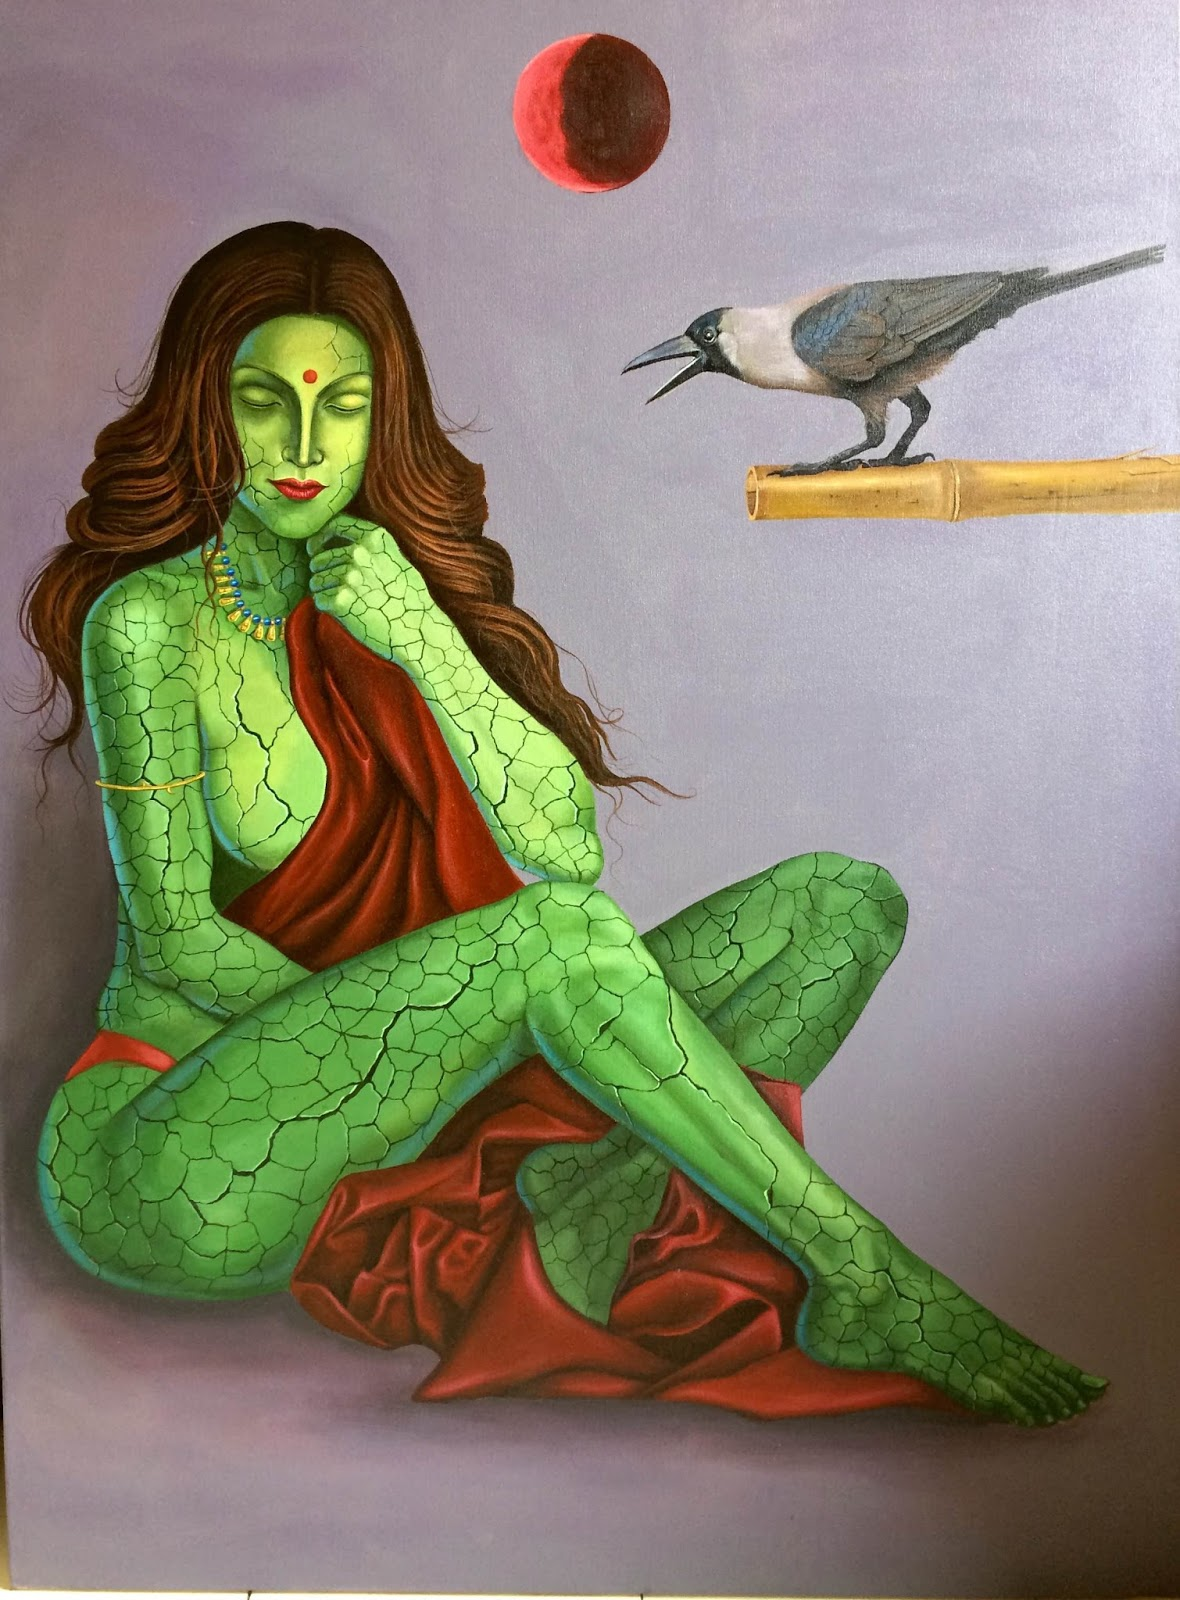 Saaib Raza Is An Artist Based In New Delhi India Growing Negativity Humanity The Main Concept His Paintings